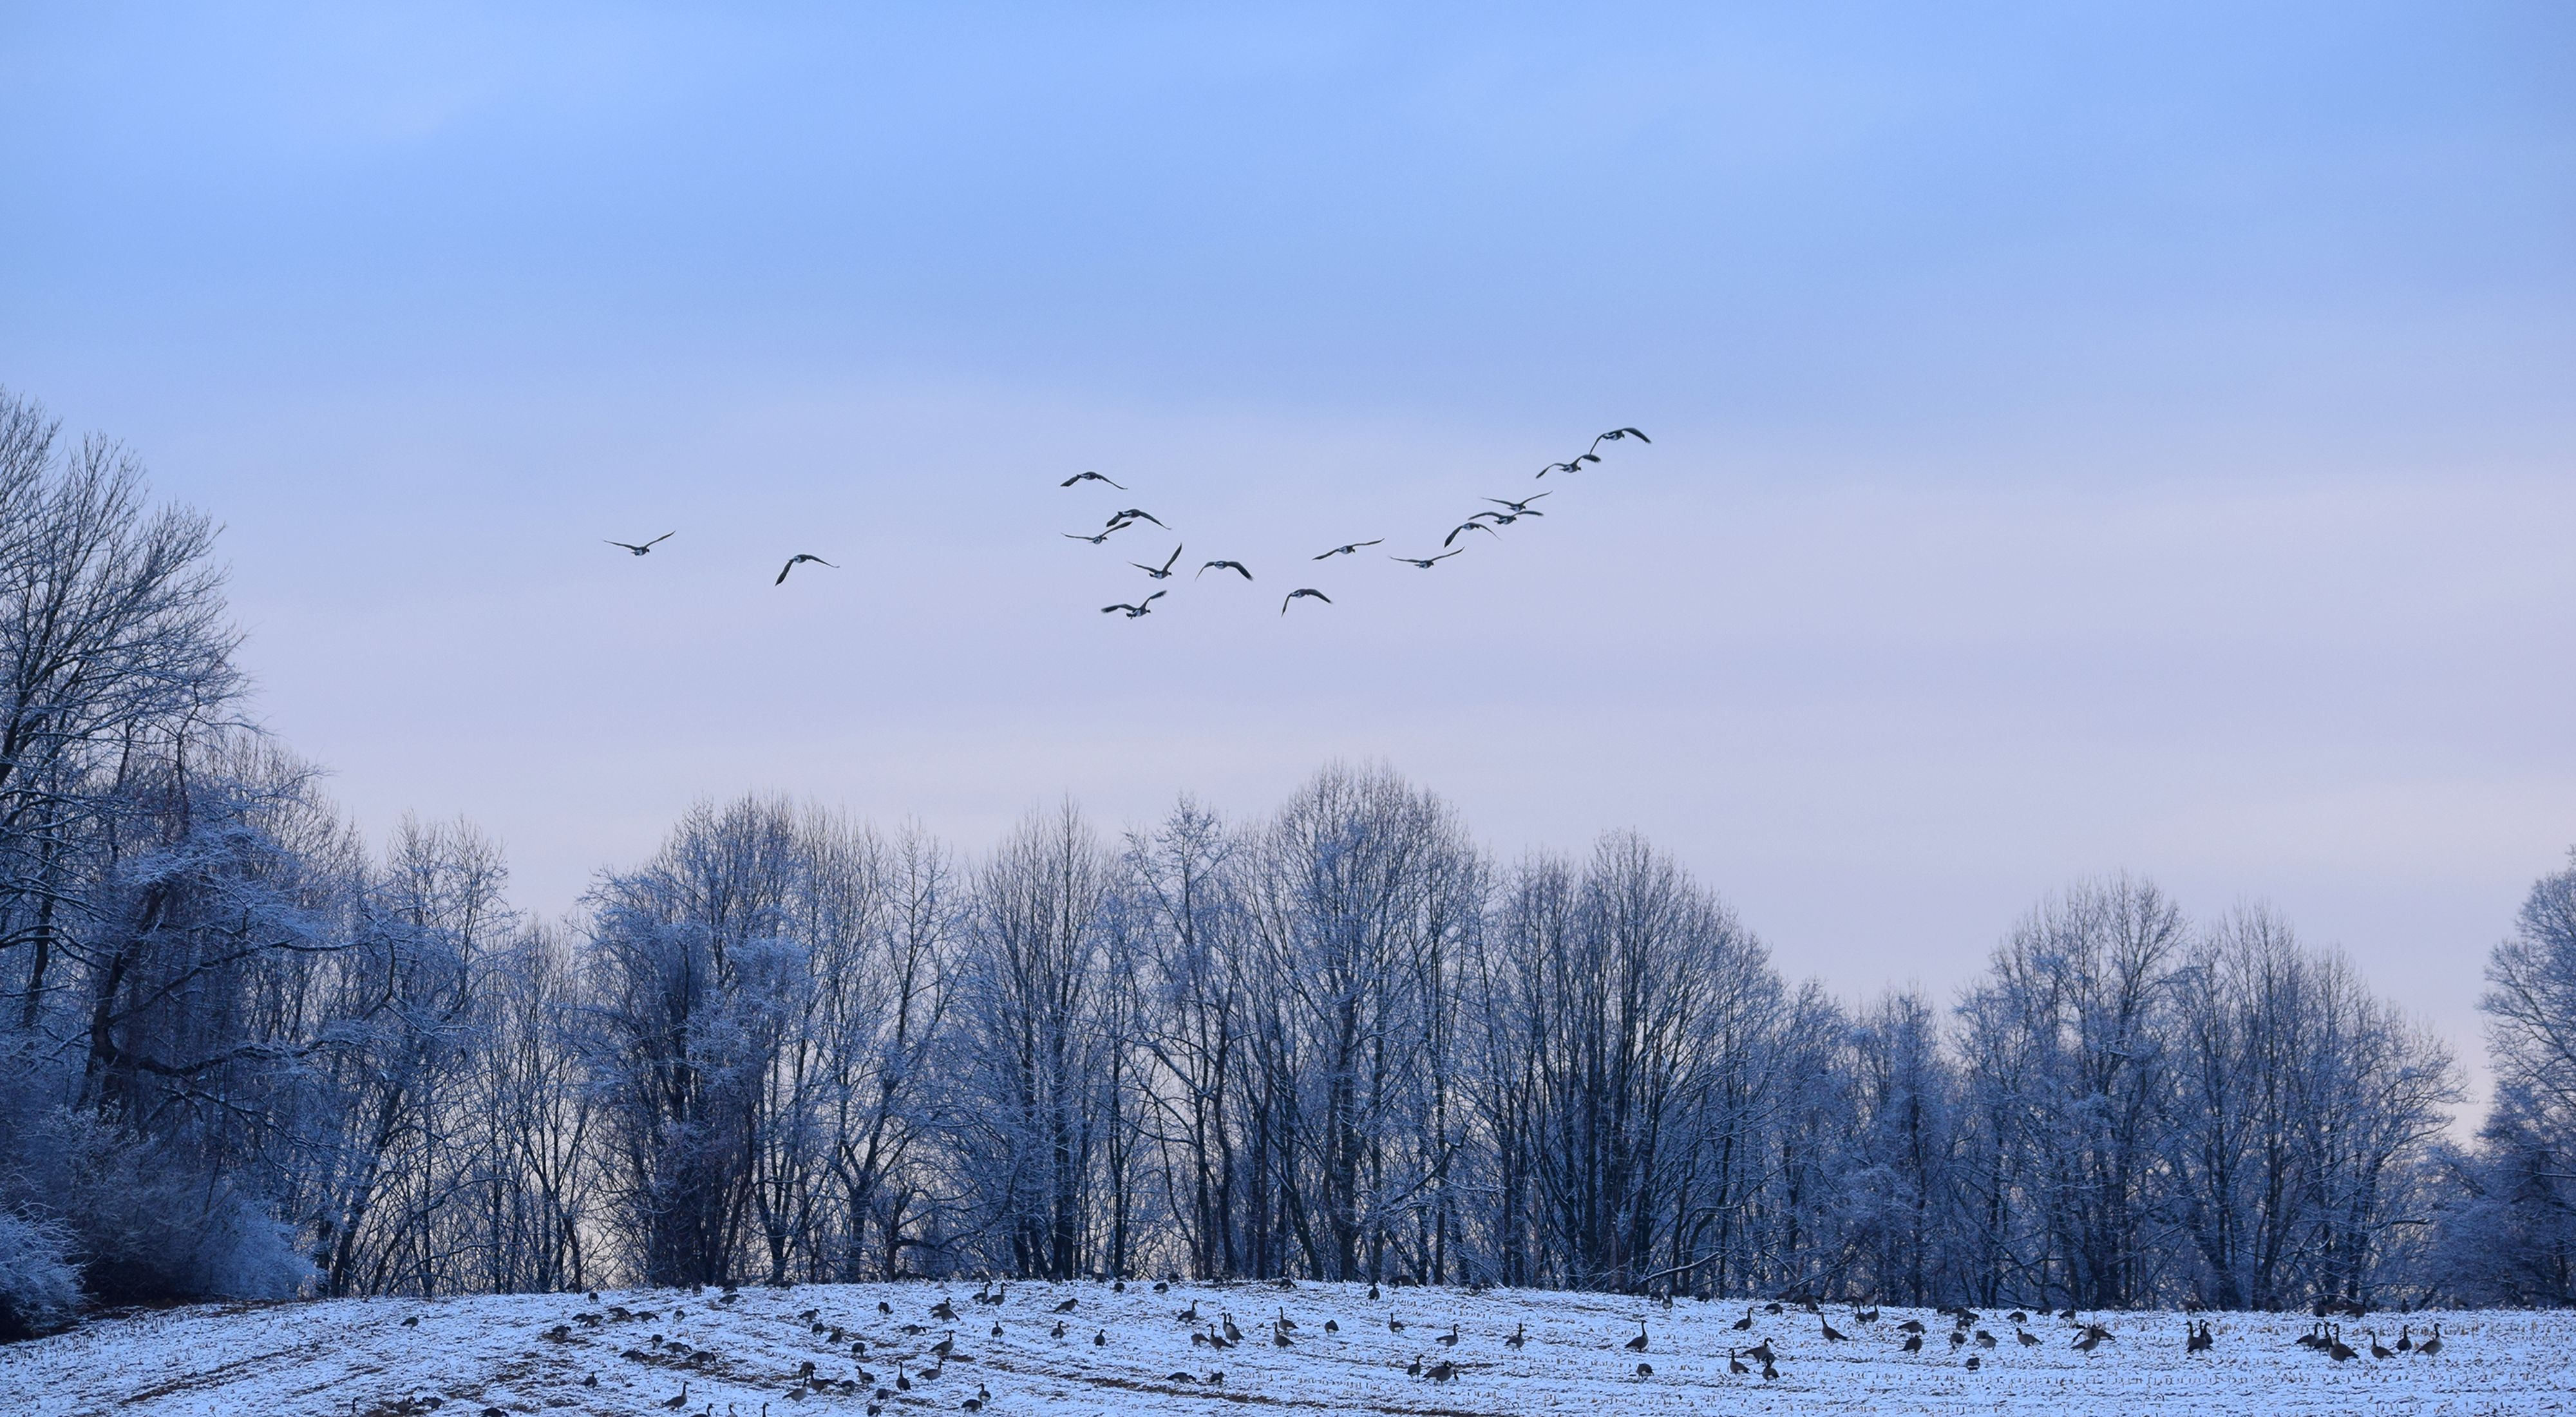 A large flock of Canada geese forage for food on a snow covered hill. Leafless snow covered trees line the background. A V-line of geese fly overhead.